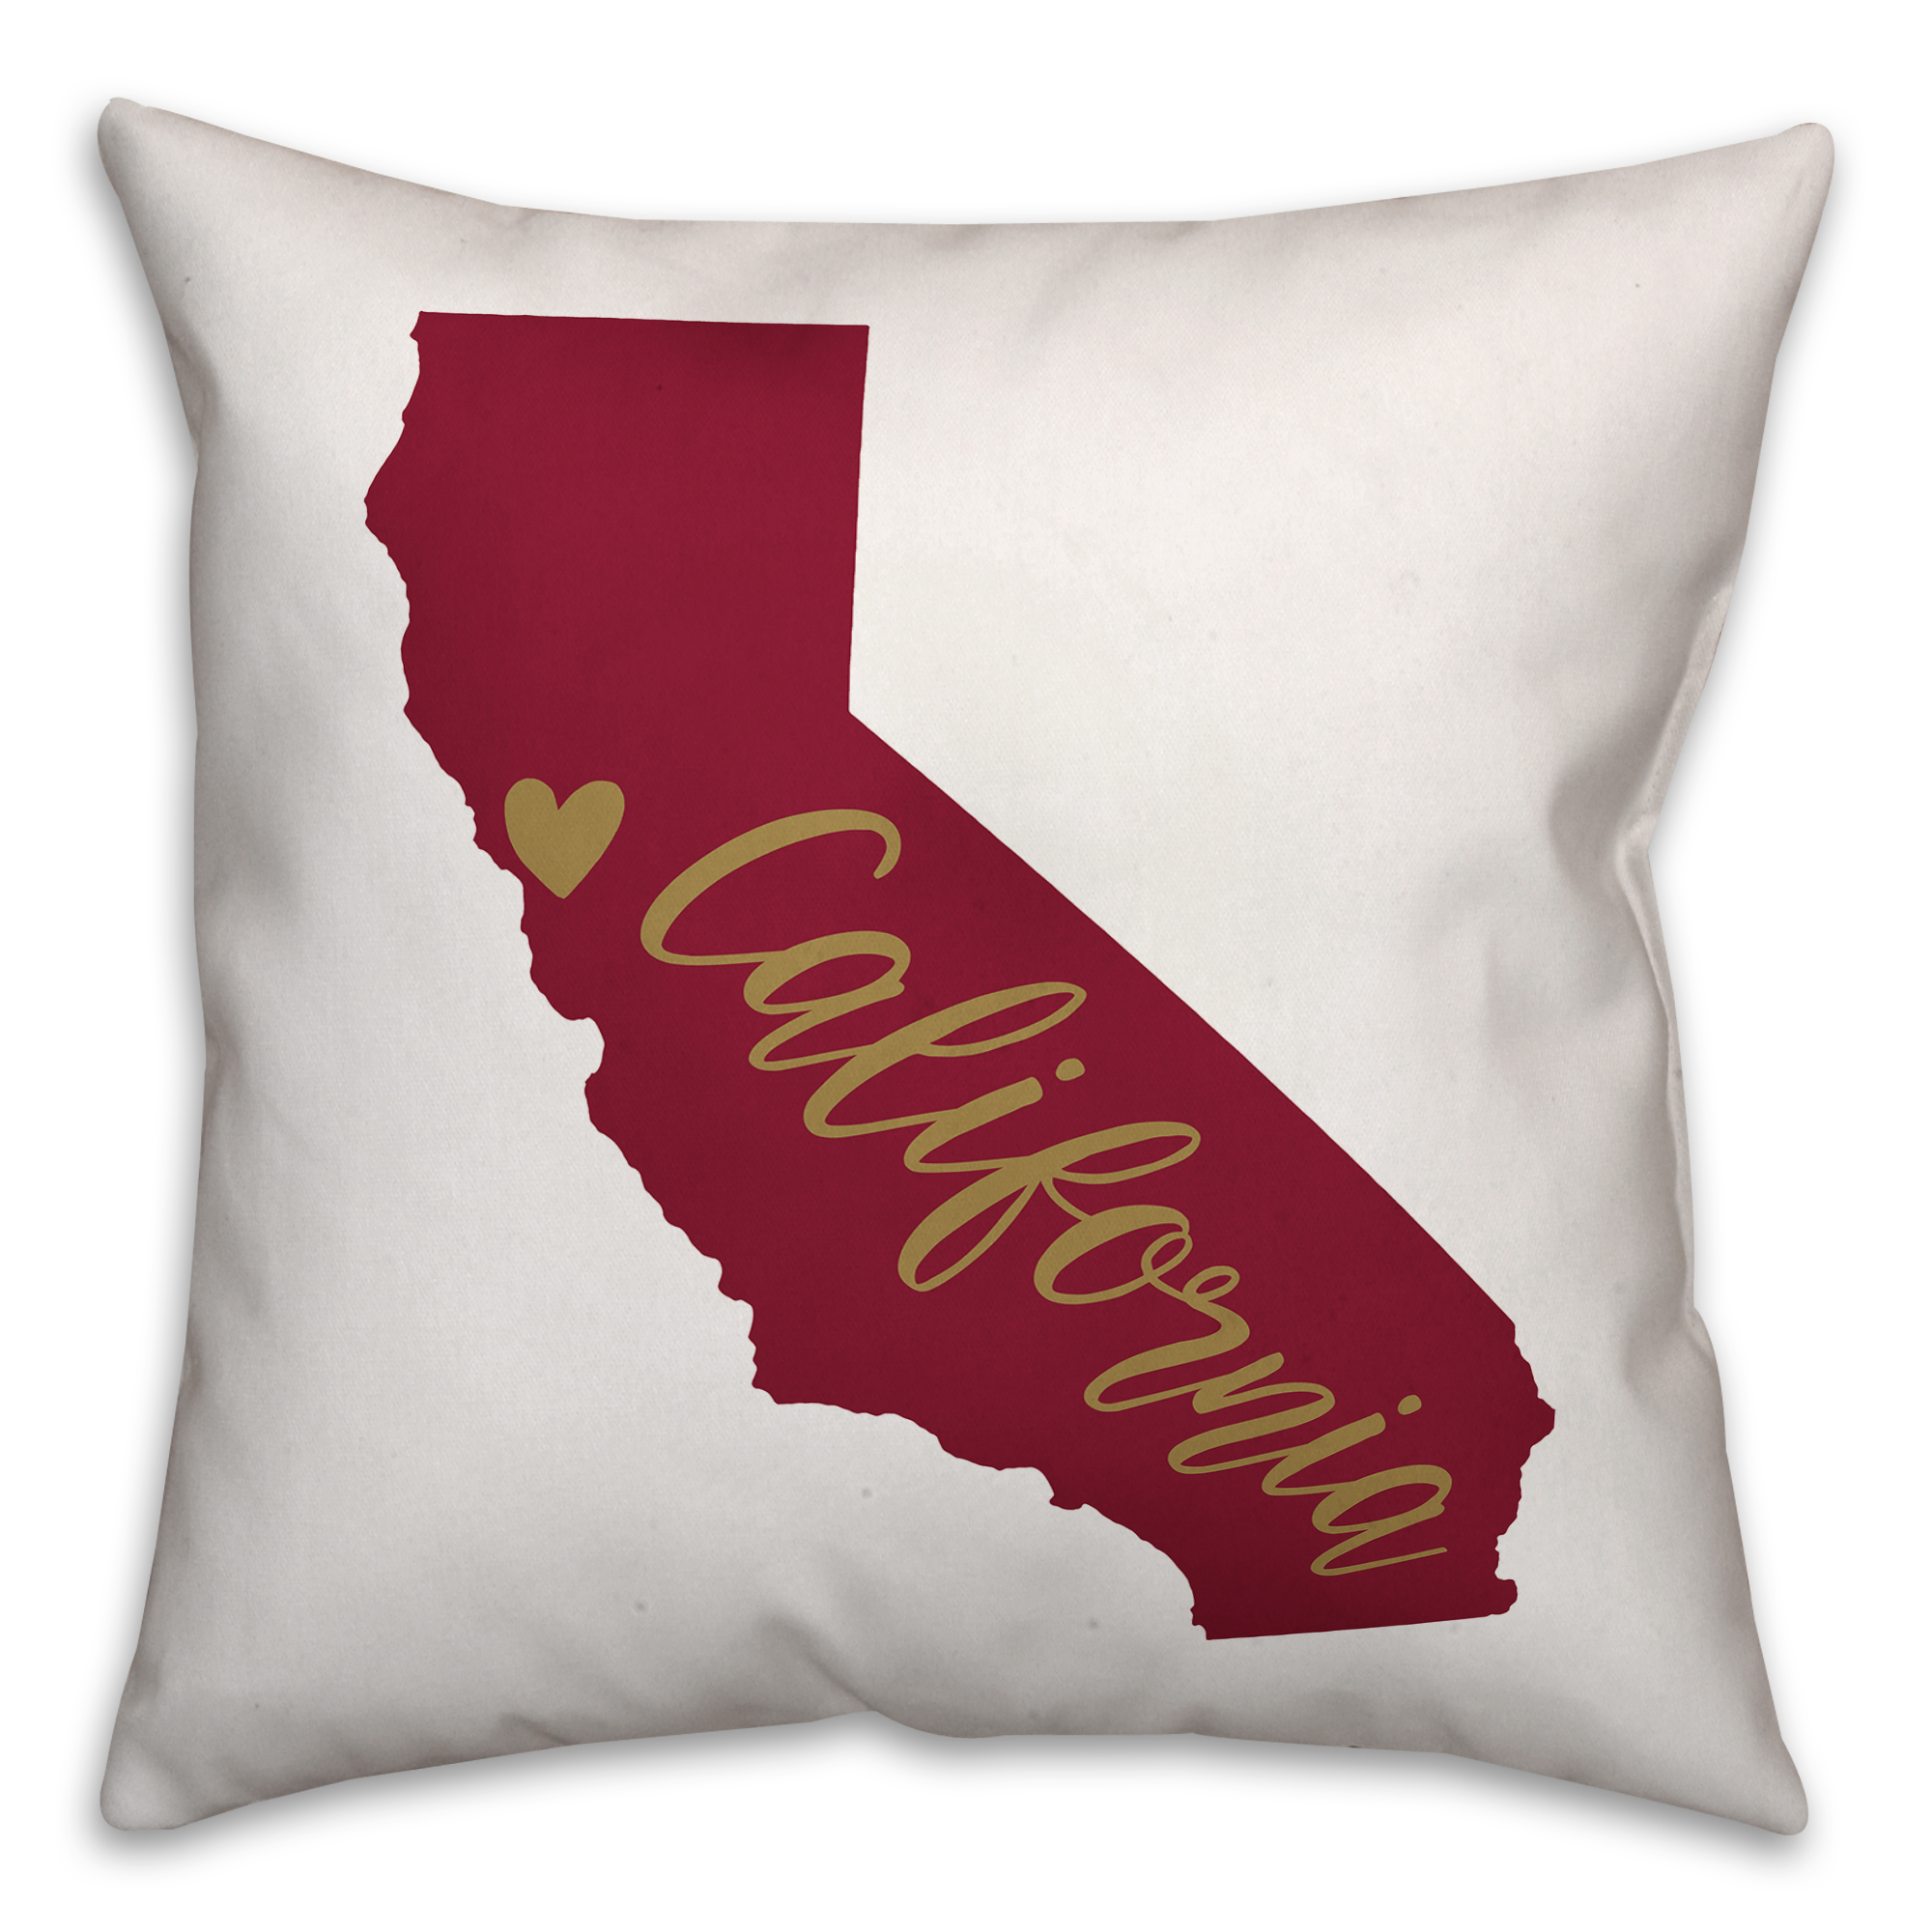 Red and Tan California Pride 16x16 Spun Poly Pillow